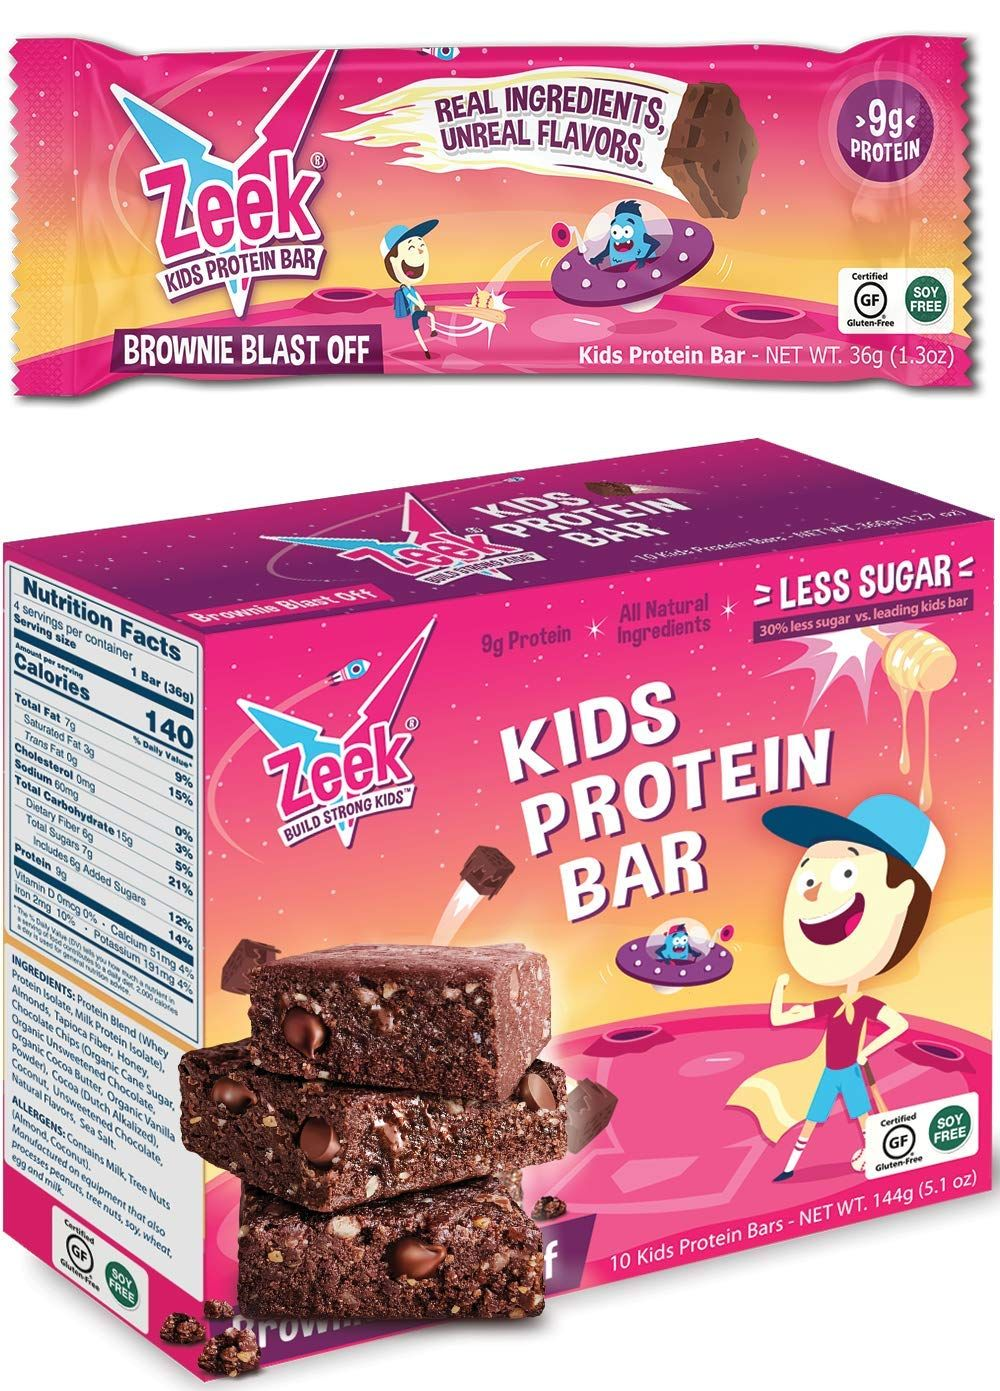 Zeek Kids Protein Bars- High Protein, Low Sugar Snack Bar for Kids. Made with Natural Ingredients. Great for Lunch Box, After School, or Before Practice! Gluten Free, Soy Free